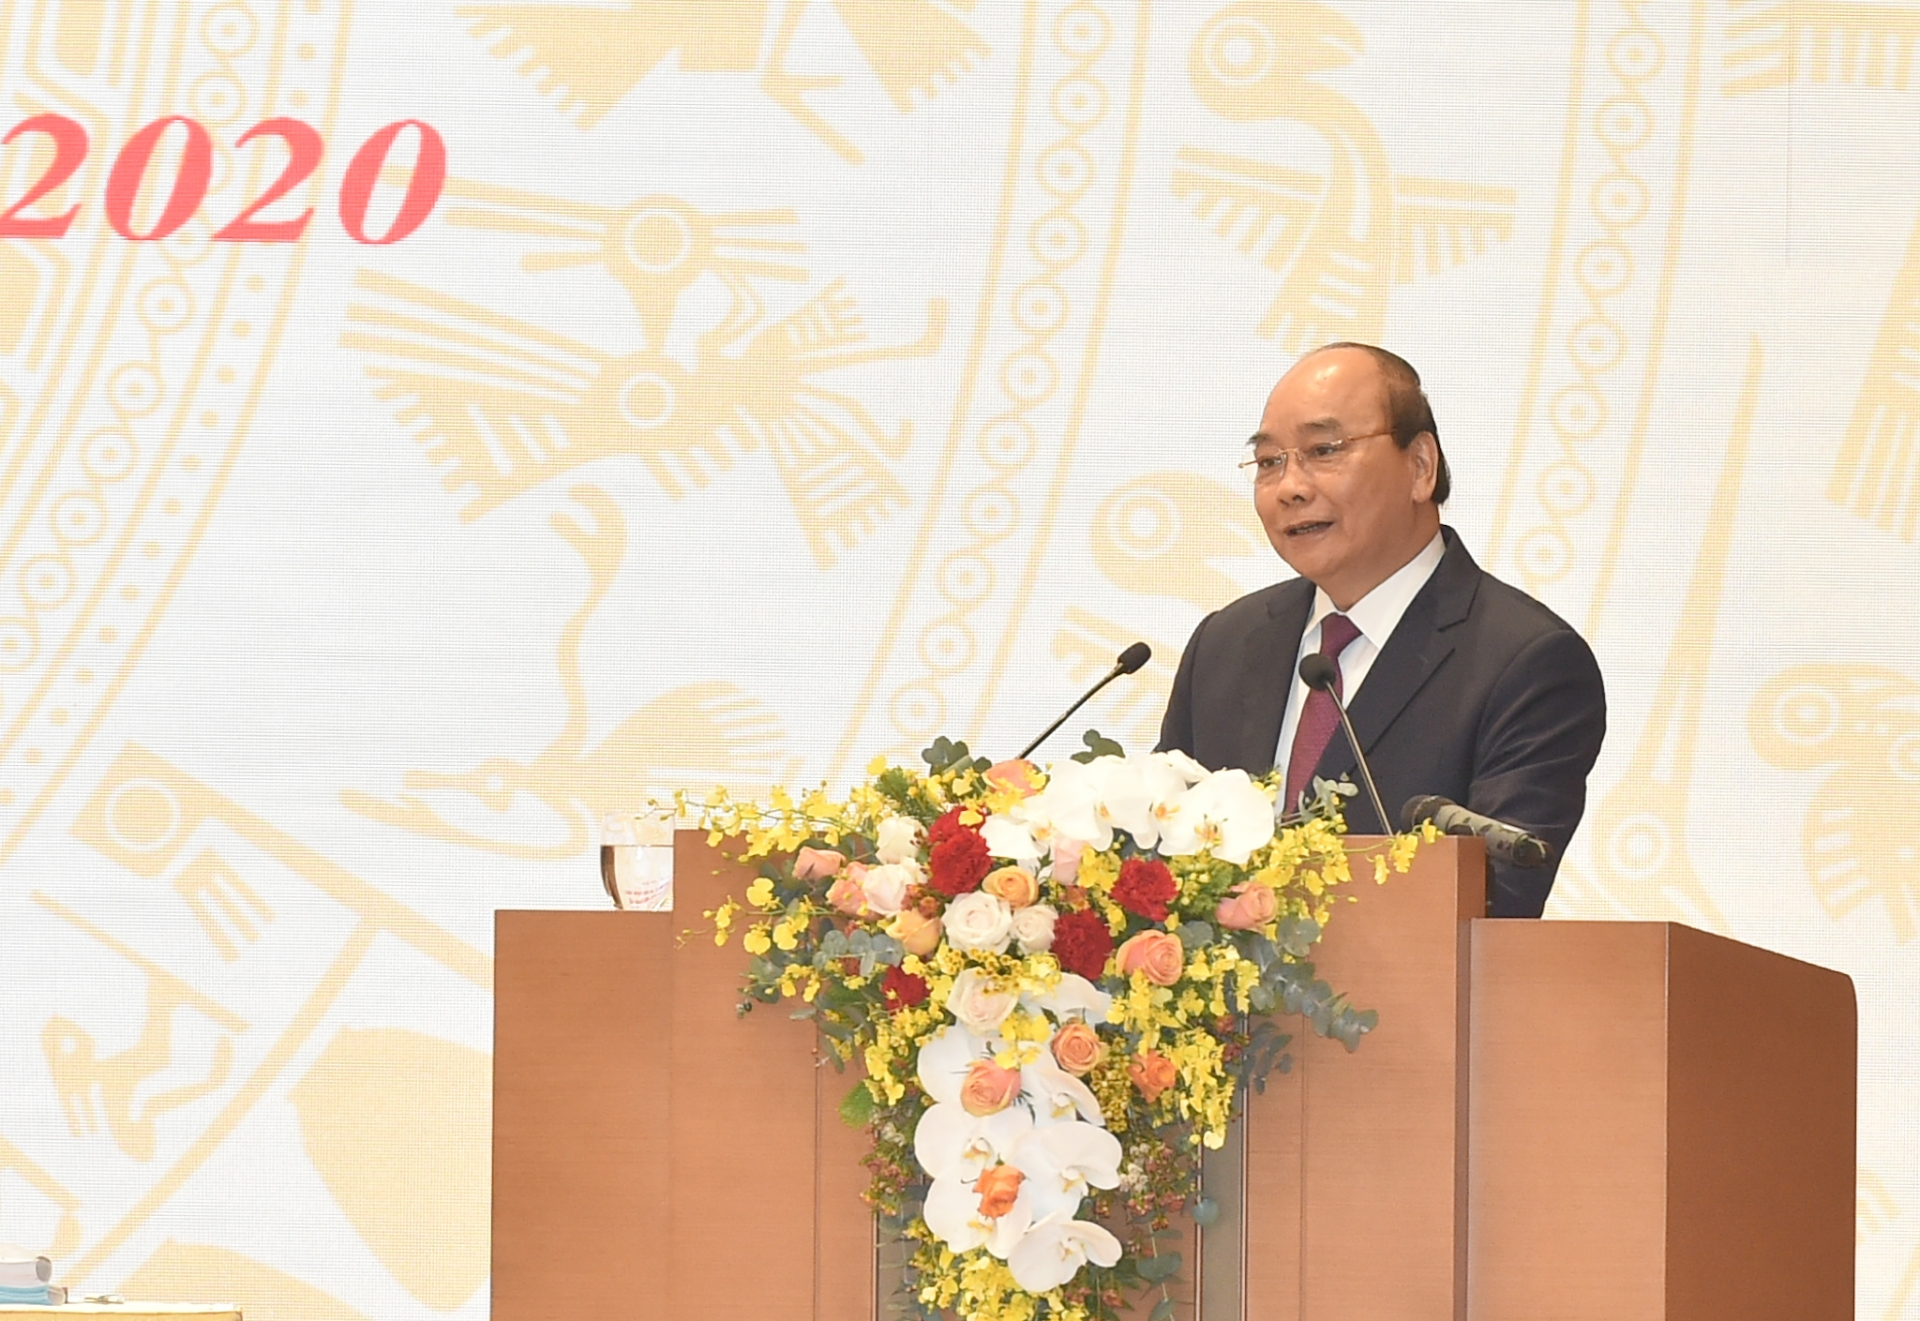 Vietnam's GDP growth rate reaches nearly 3 per cent in 2020